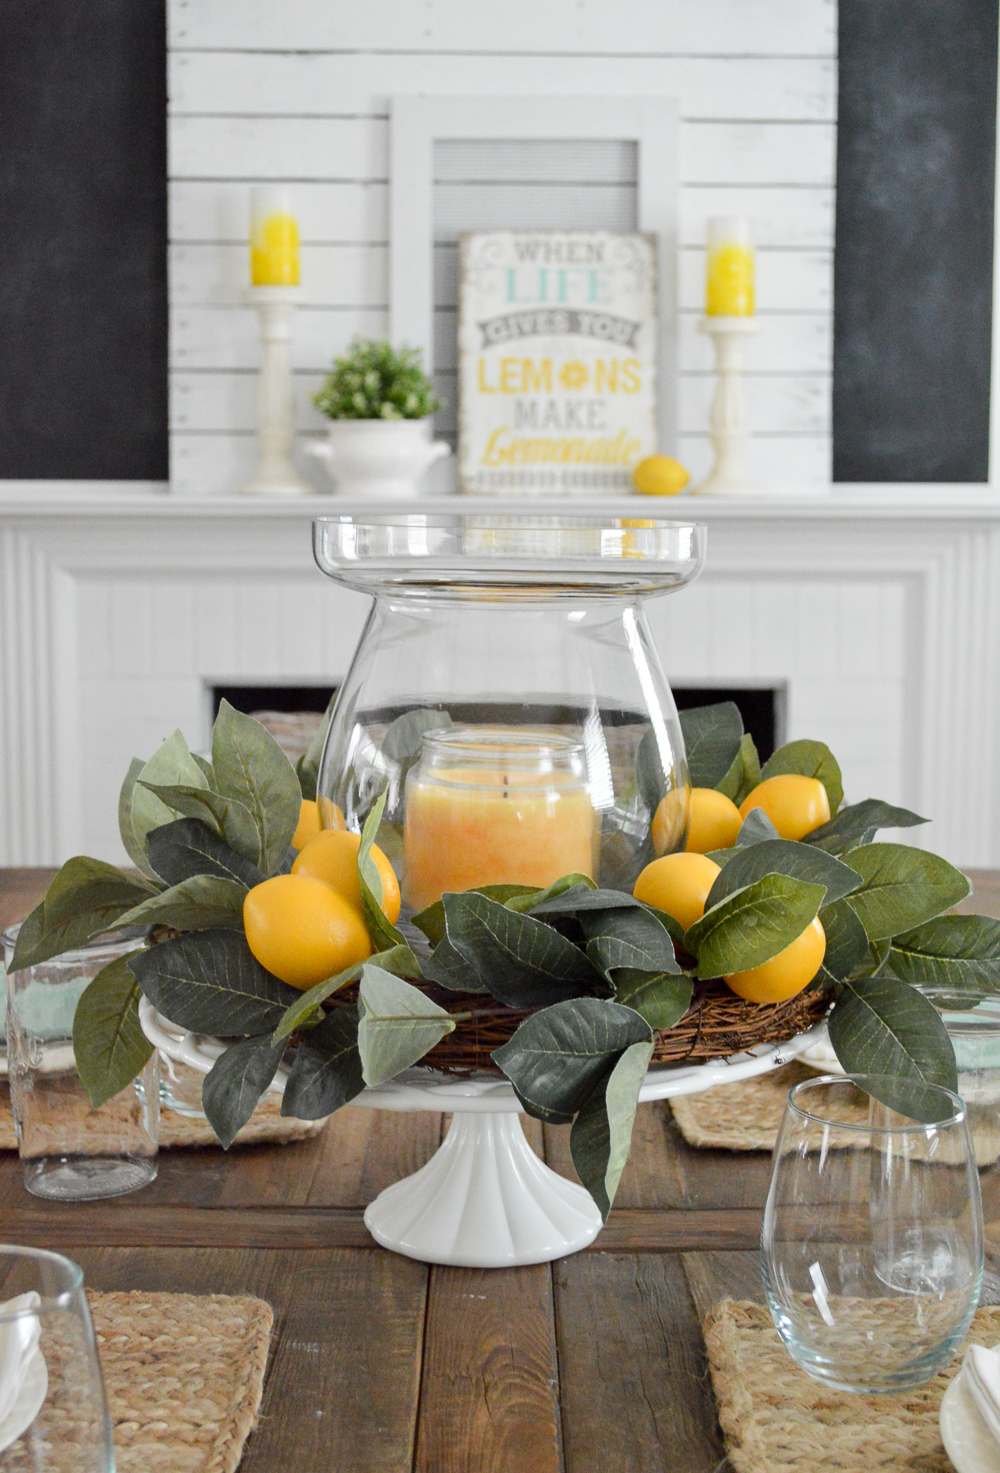 Vintage milk glass and lemon wreath centerpiece - Layer with a candle and vase for a quick dining table decor solution